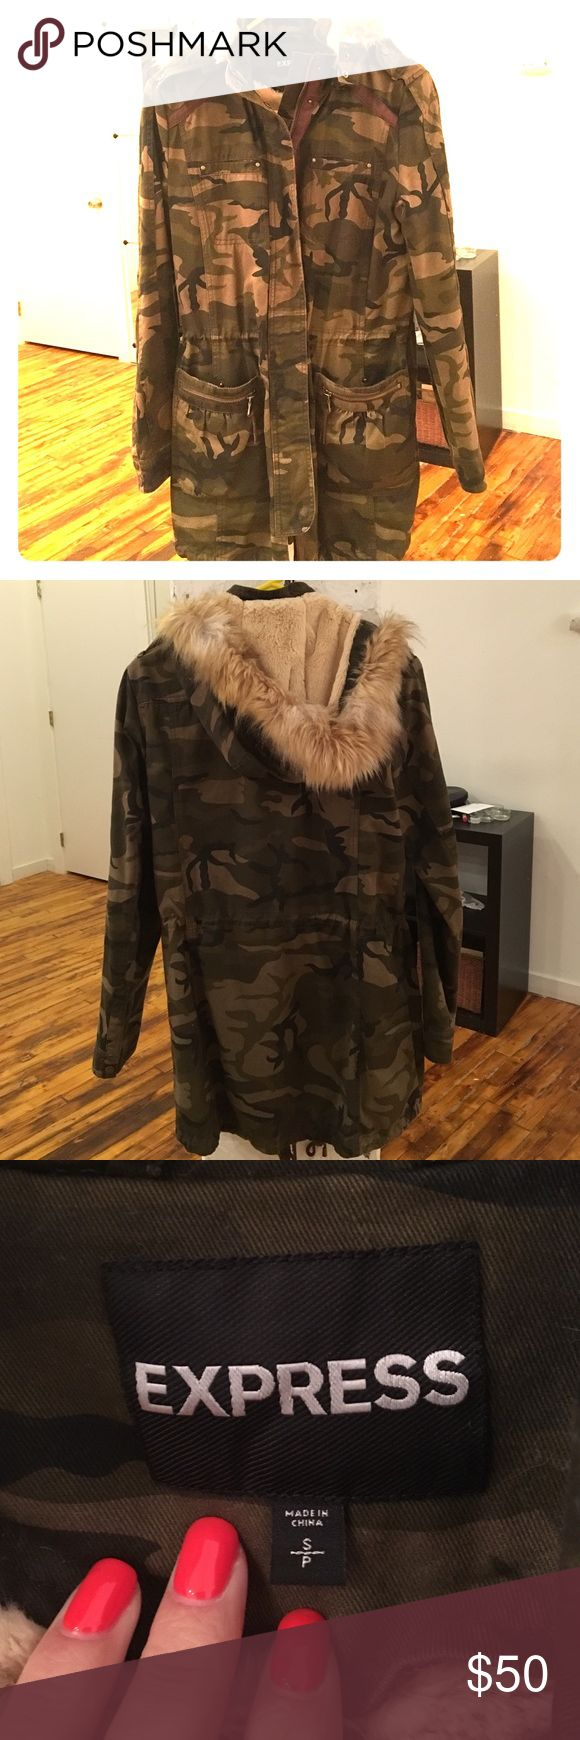 Reserved @jessbugluv Express Camo Jacket Express Camouflage Jacket/Coat Sz Small. Worn literally a handful of times. In great condition and extremely comfortable. Hood and inner fur lining are removable. Drawstrings at bottom and waist to get desired fit. This jacket was worn in the TV show Shameless!!! Loved seeing it on there. Express Jackets & Coats Utility Jackets